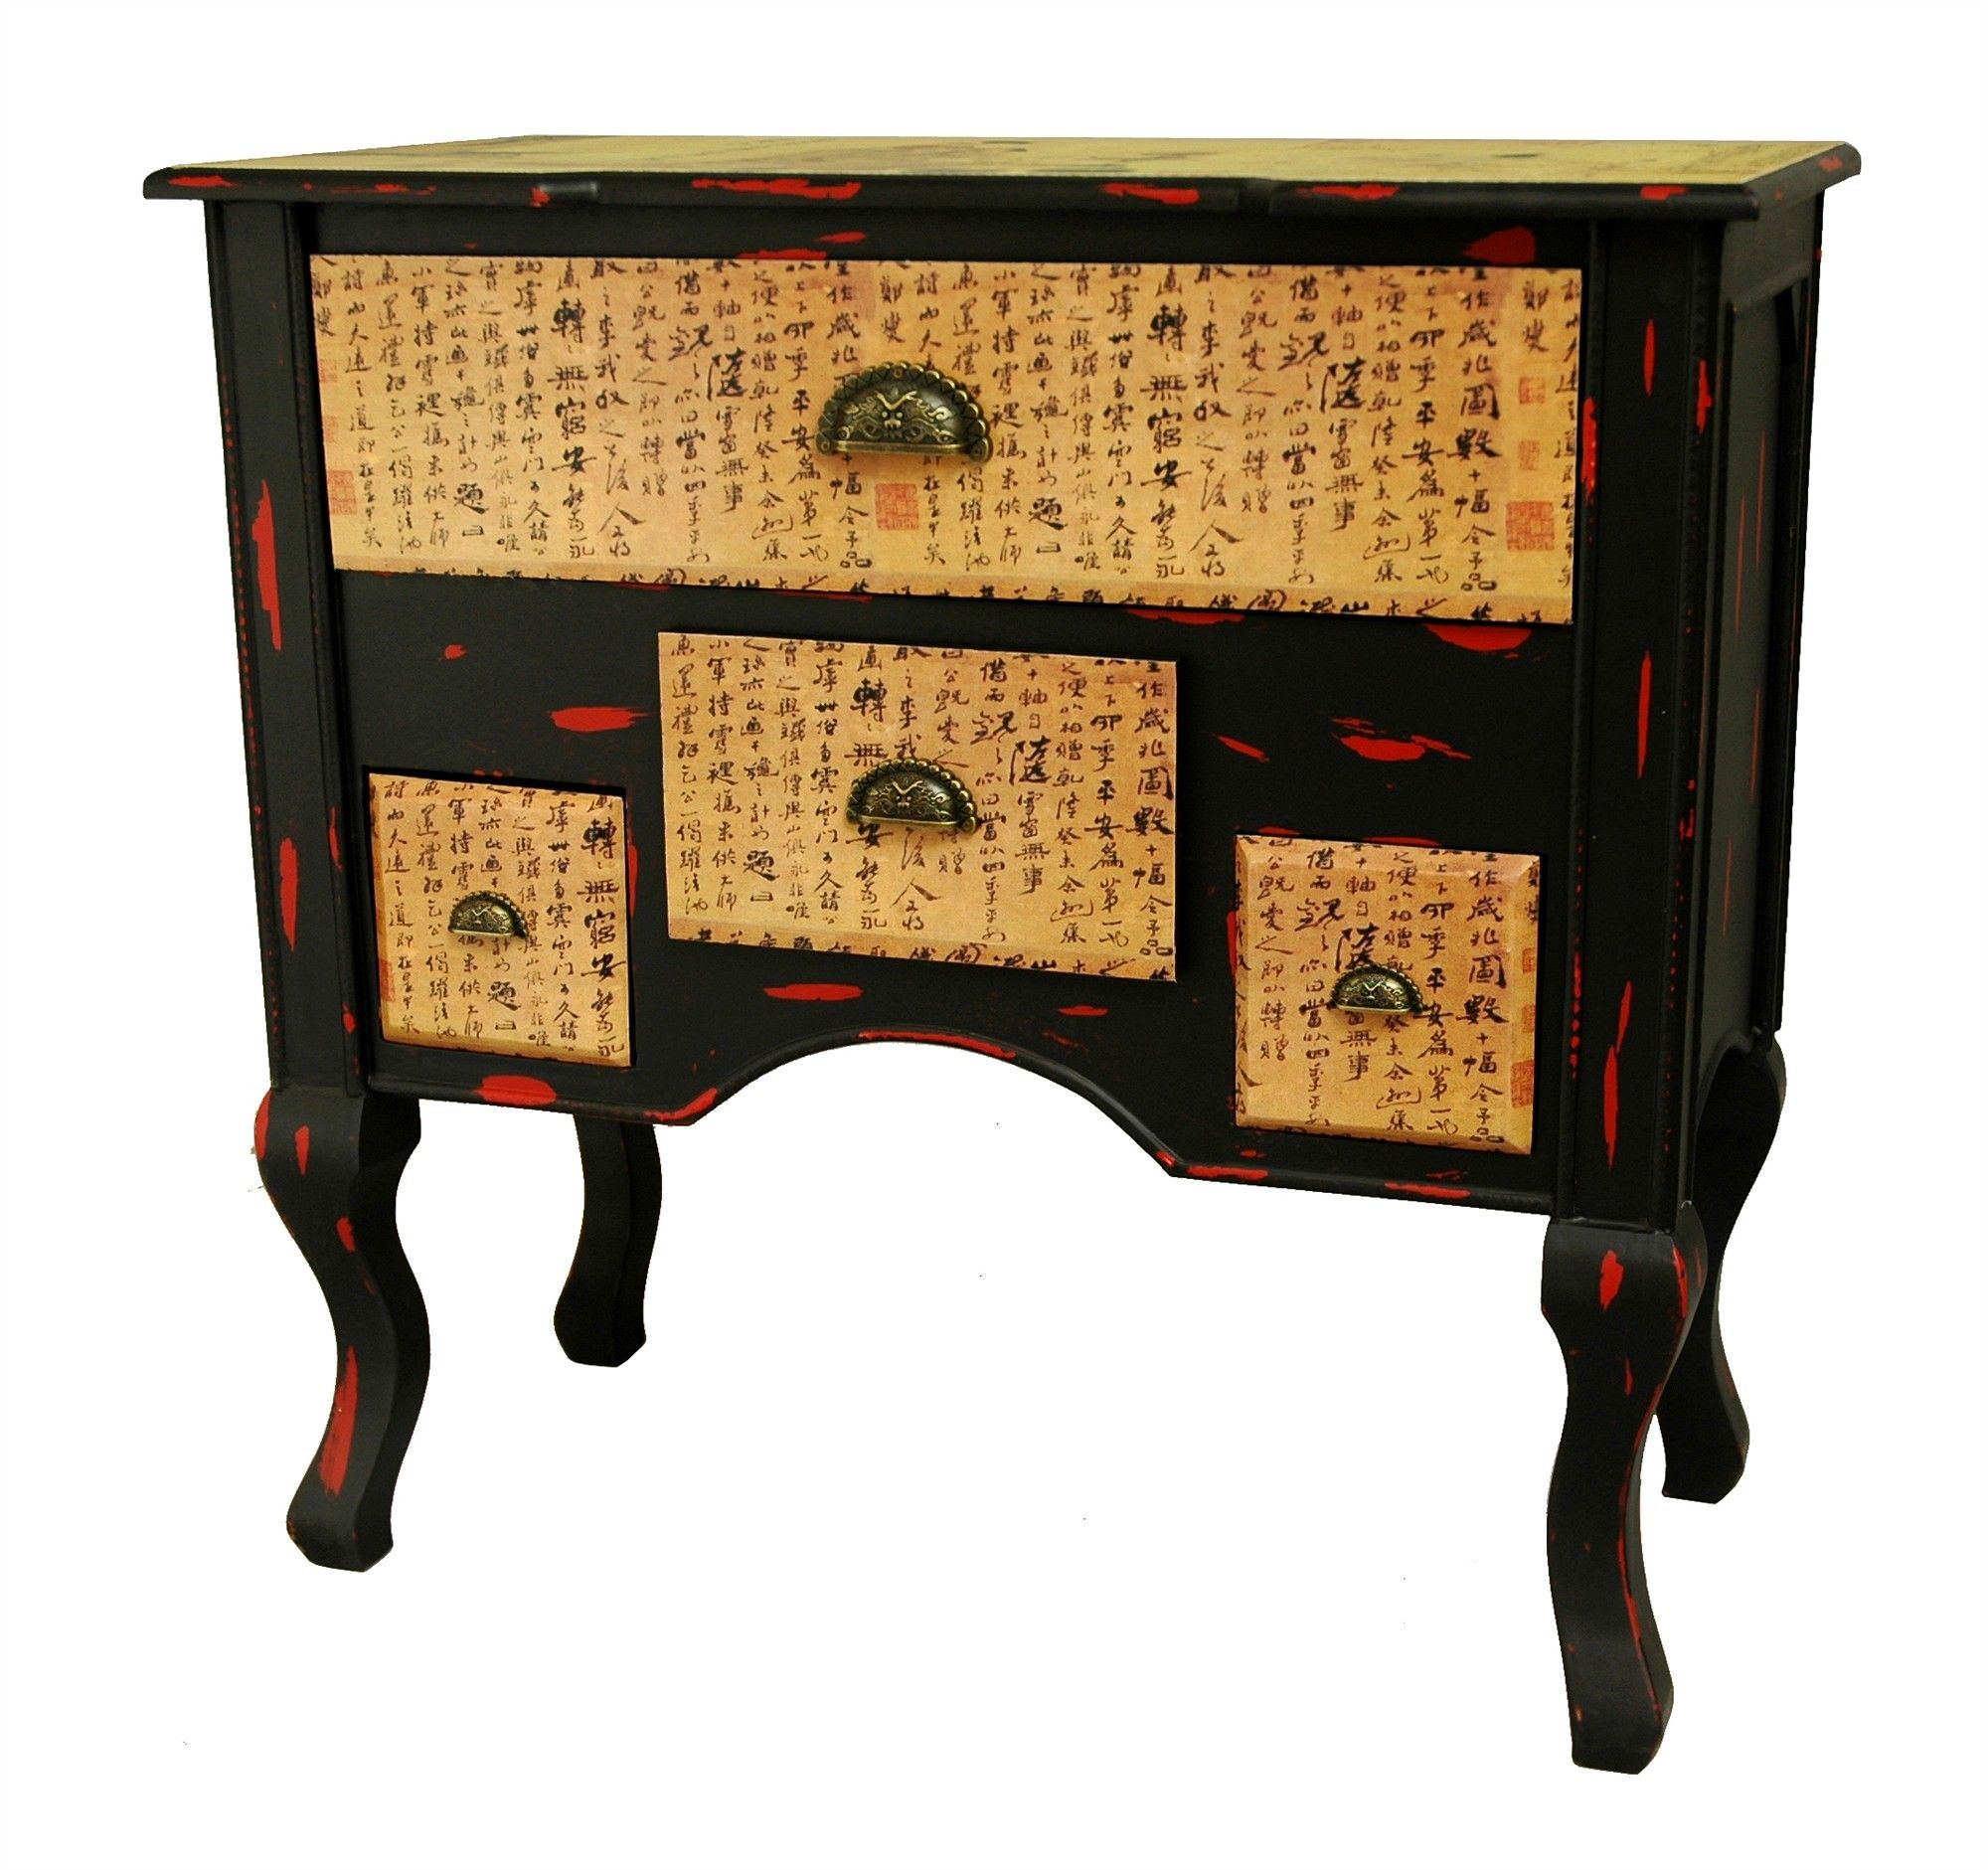 Charmant Cheap Storage Trunks | Oriental Storage Trunks W Painted Scenes Portraying  Geishas U2013 Set Of .